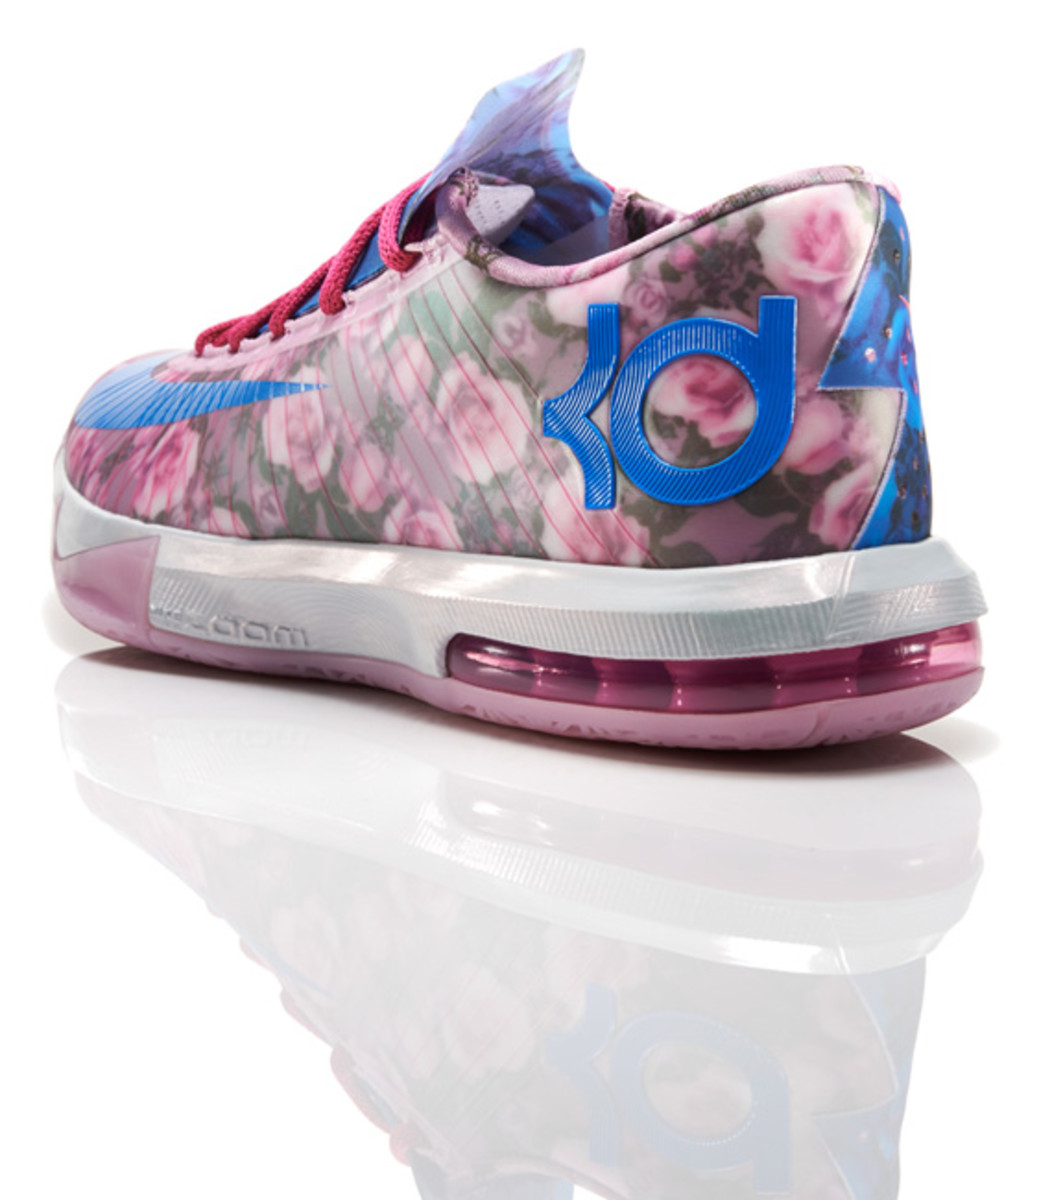 nike-kd-6-aunt-pearl-collection-officially-unveiled10